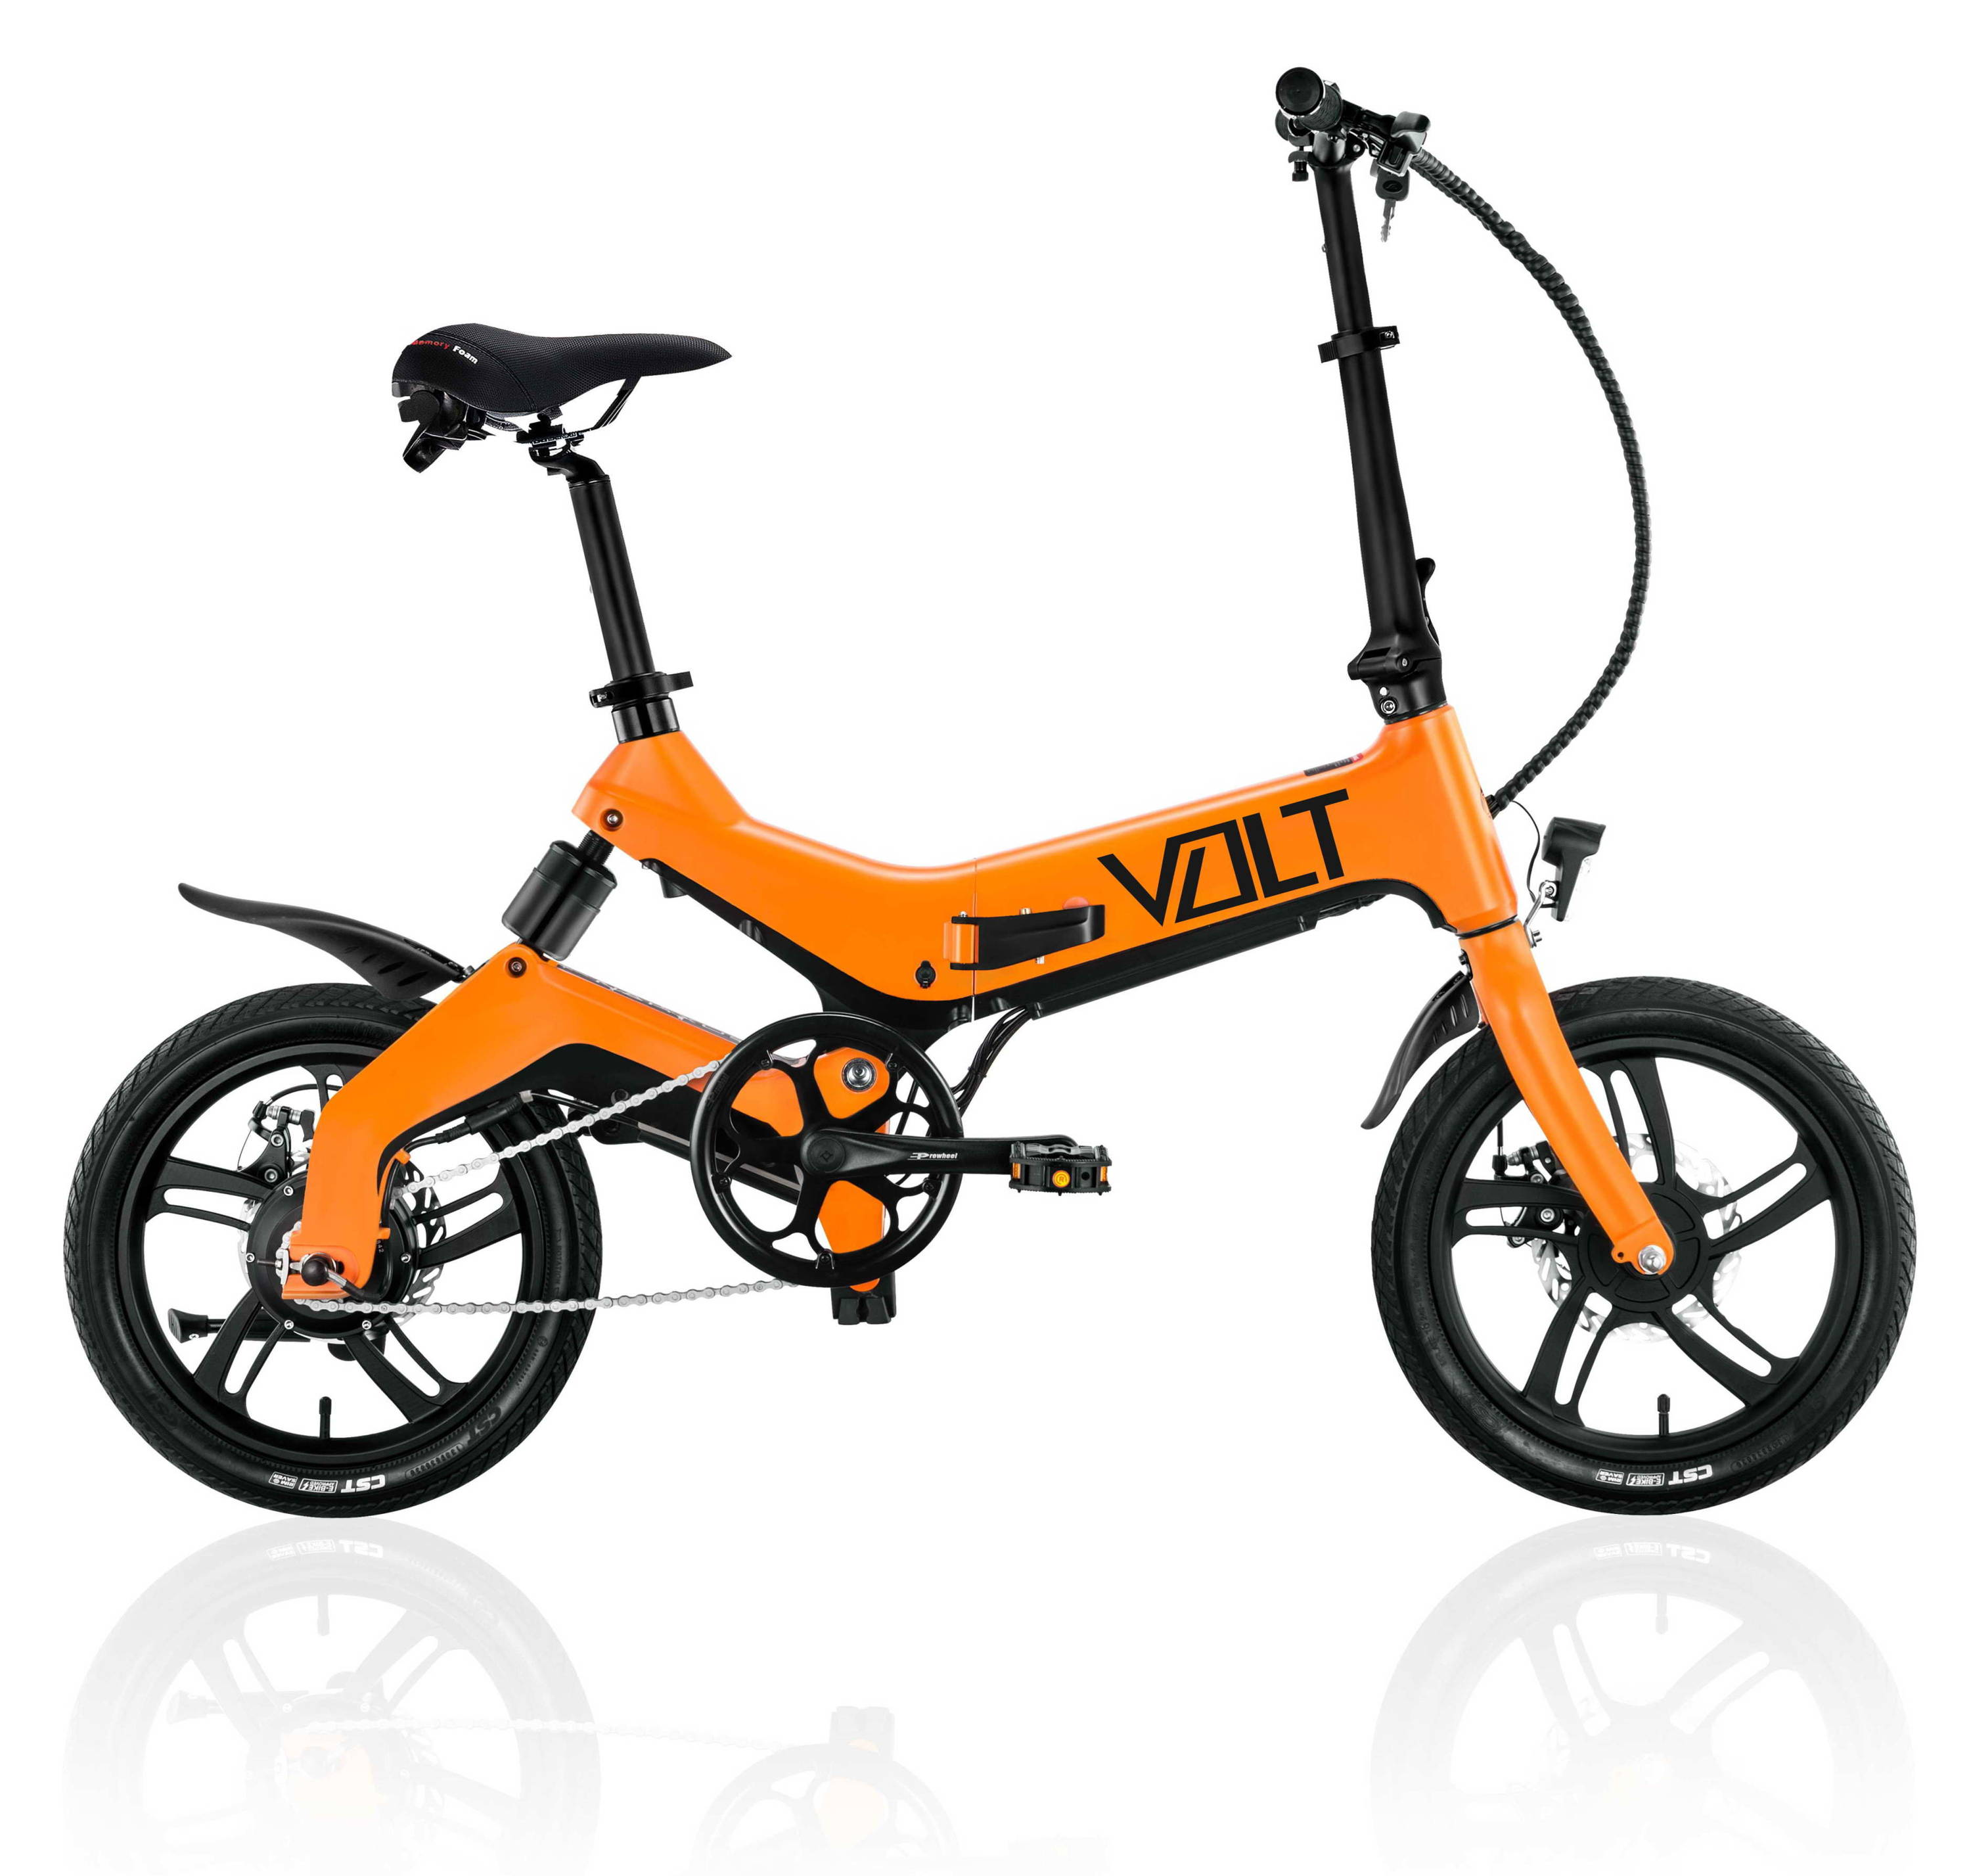 VOLT mate city electric bicycle, or Australian electric bike in hazard orange colour. VOLT makes smart electric bikes. Choose the best electric bikes for top value of money. Tough aluminum and magnesium alloy bike frame engineered for e-bike operation. VOLT Mate has city tyre with city tire threads for easy urban riding. VOLT makes the best electric bikes for Australia.